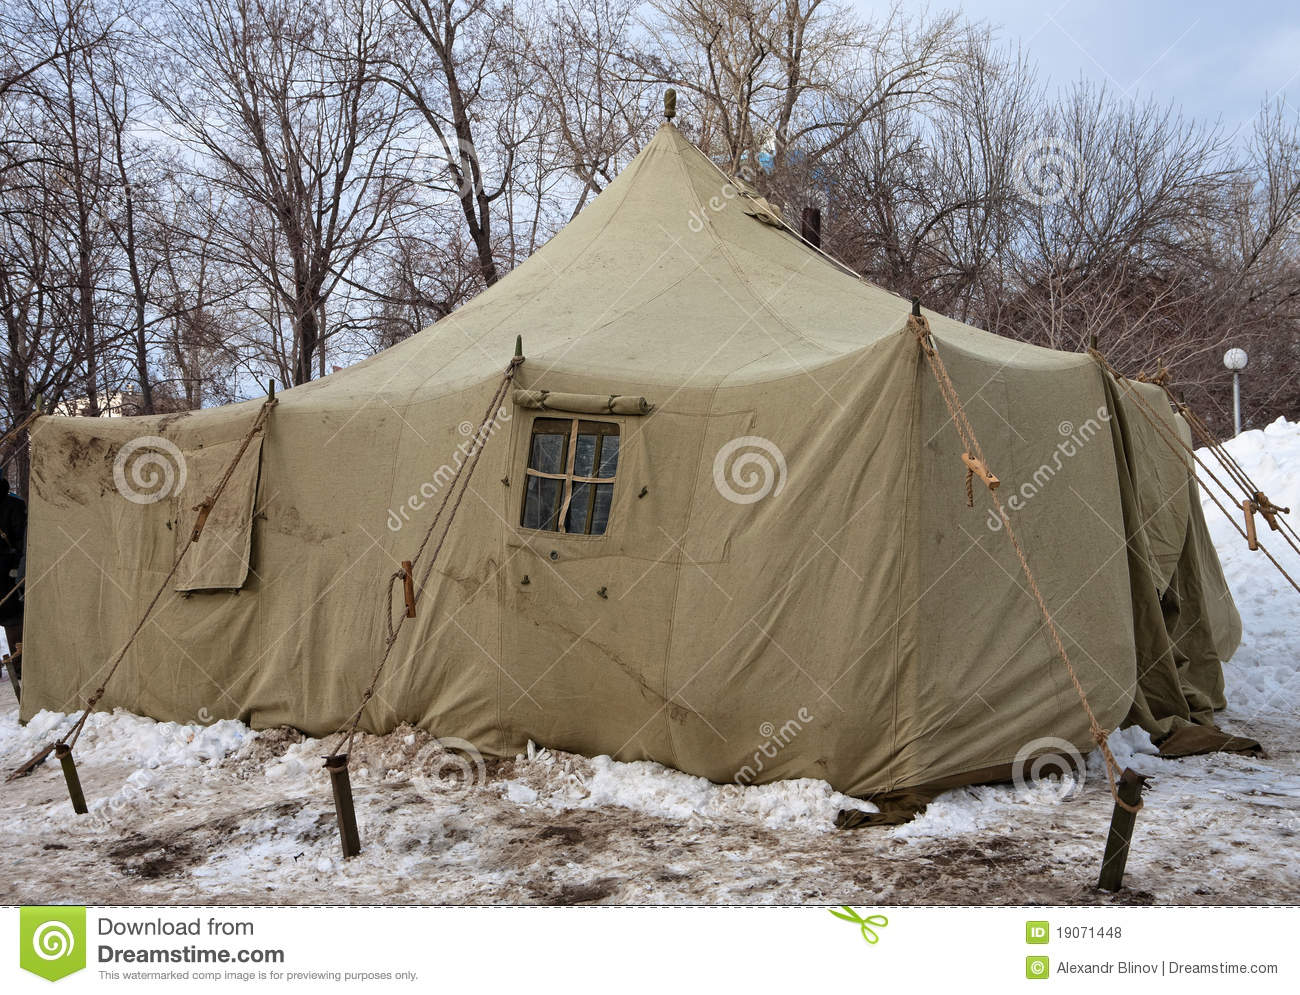 The Army expedition tents & The Army expedition tents stock photo. Image of private - 19071448